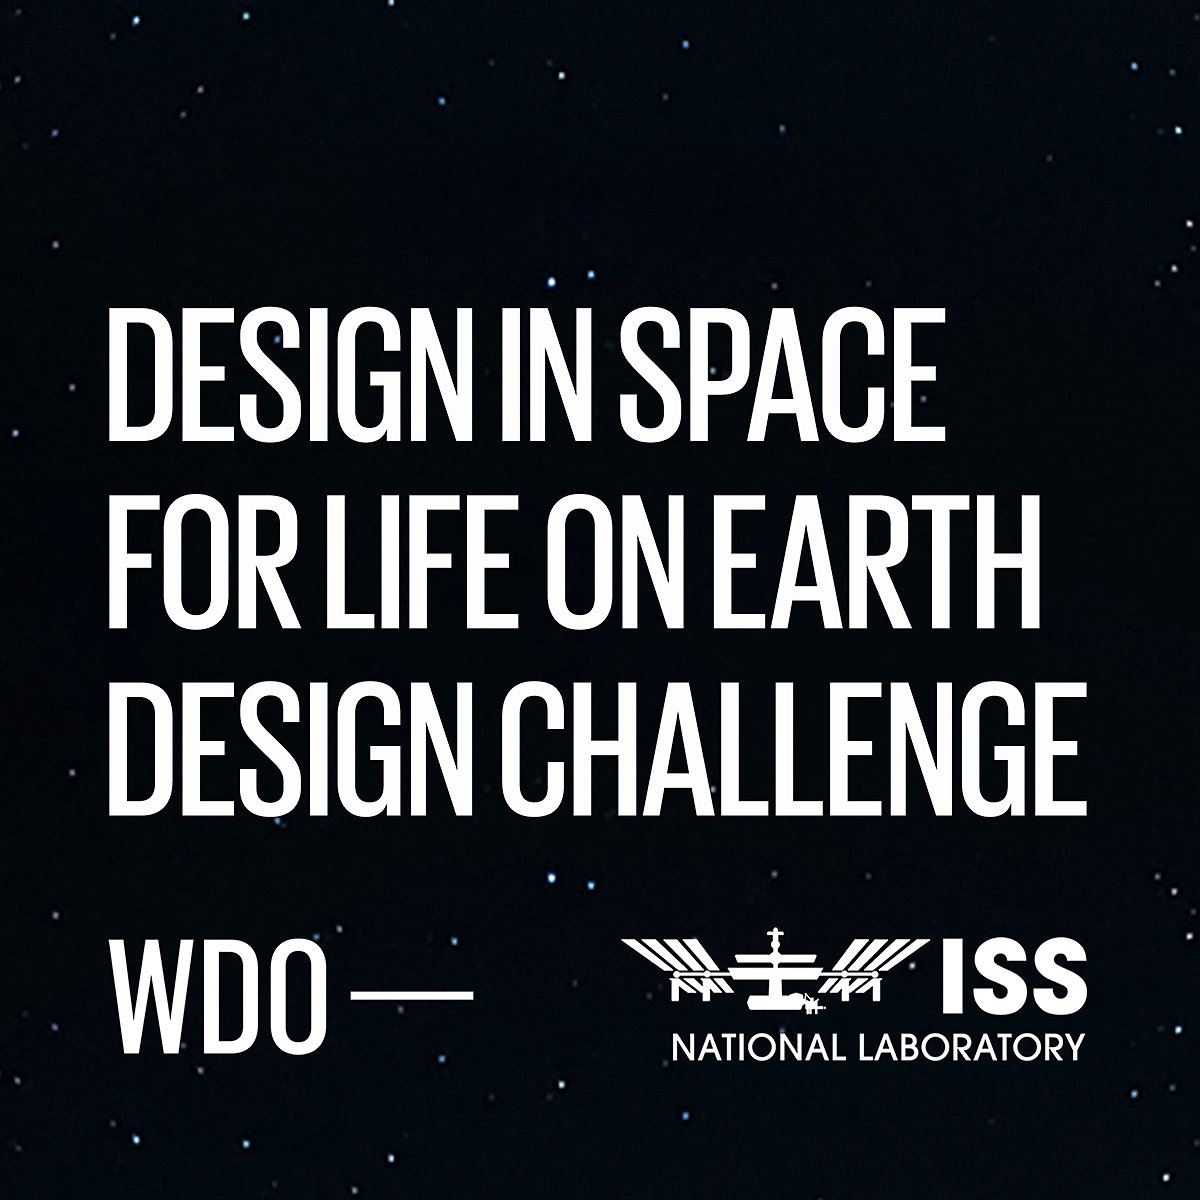 WDO Launches 'Design in Space for Life on Earth' Design Challenge